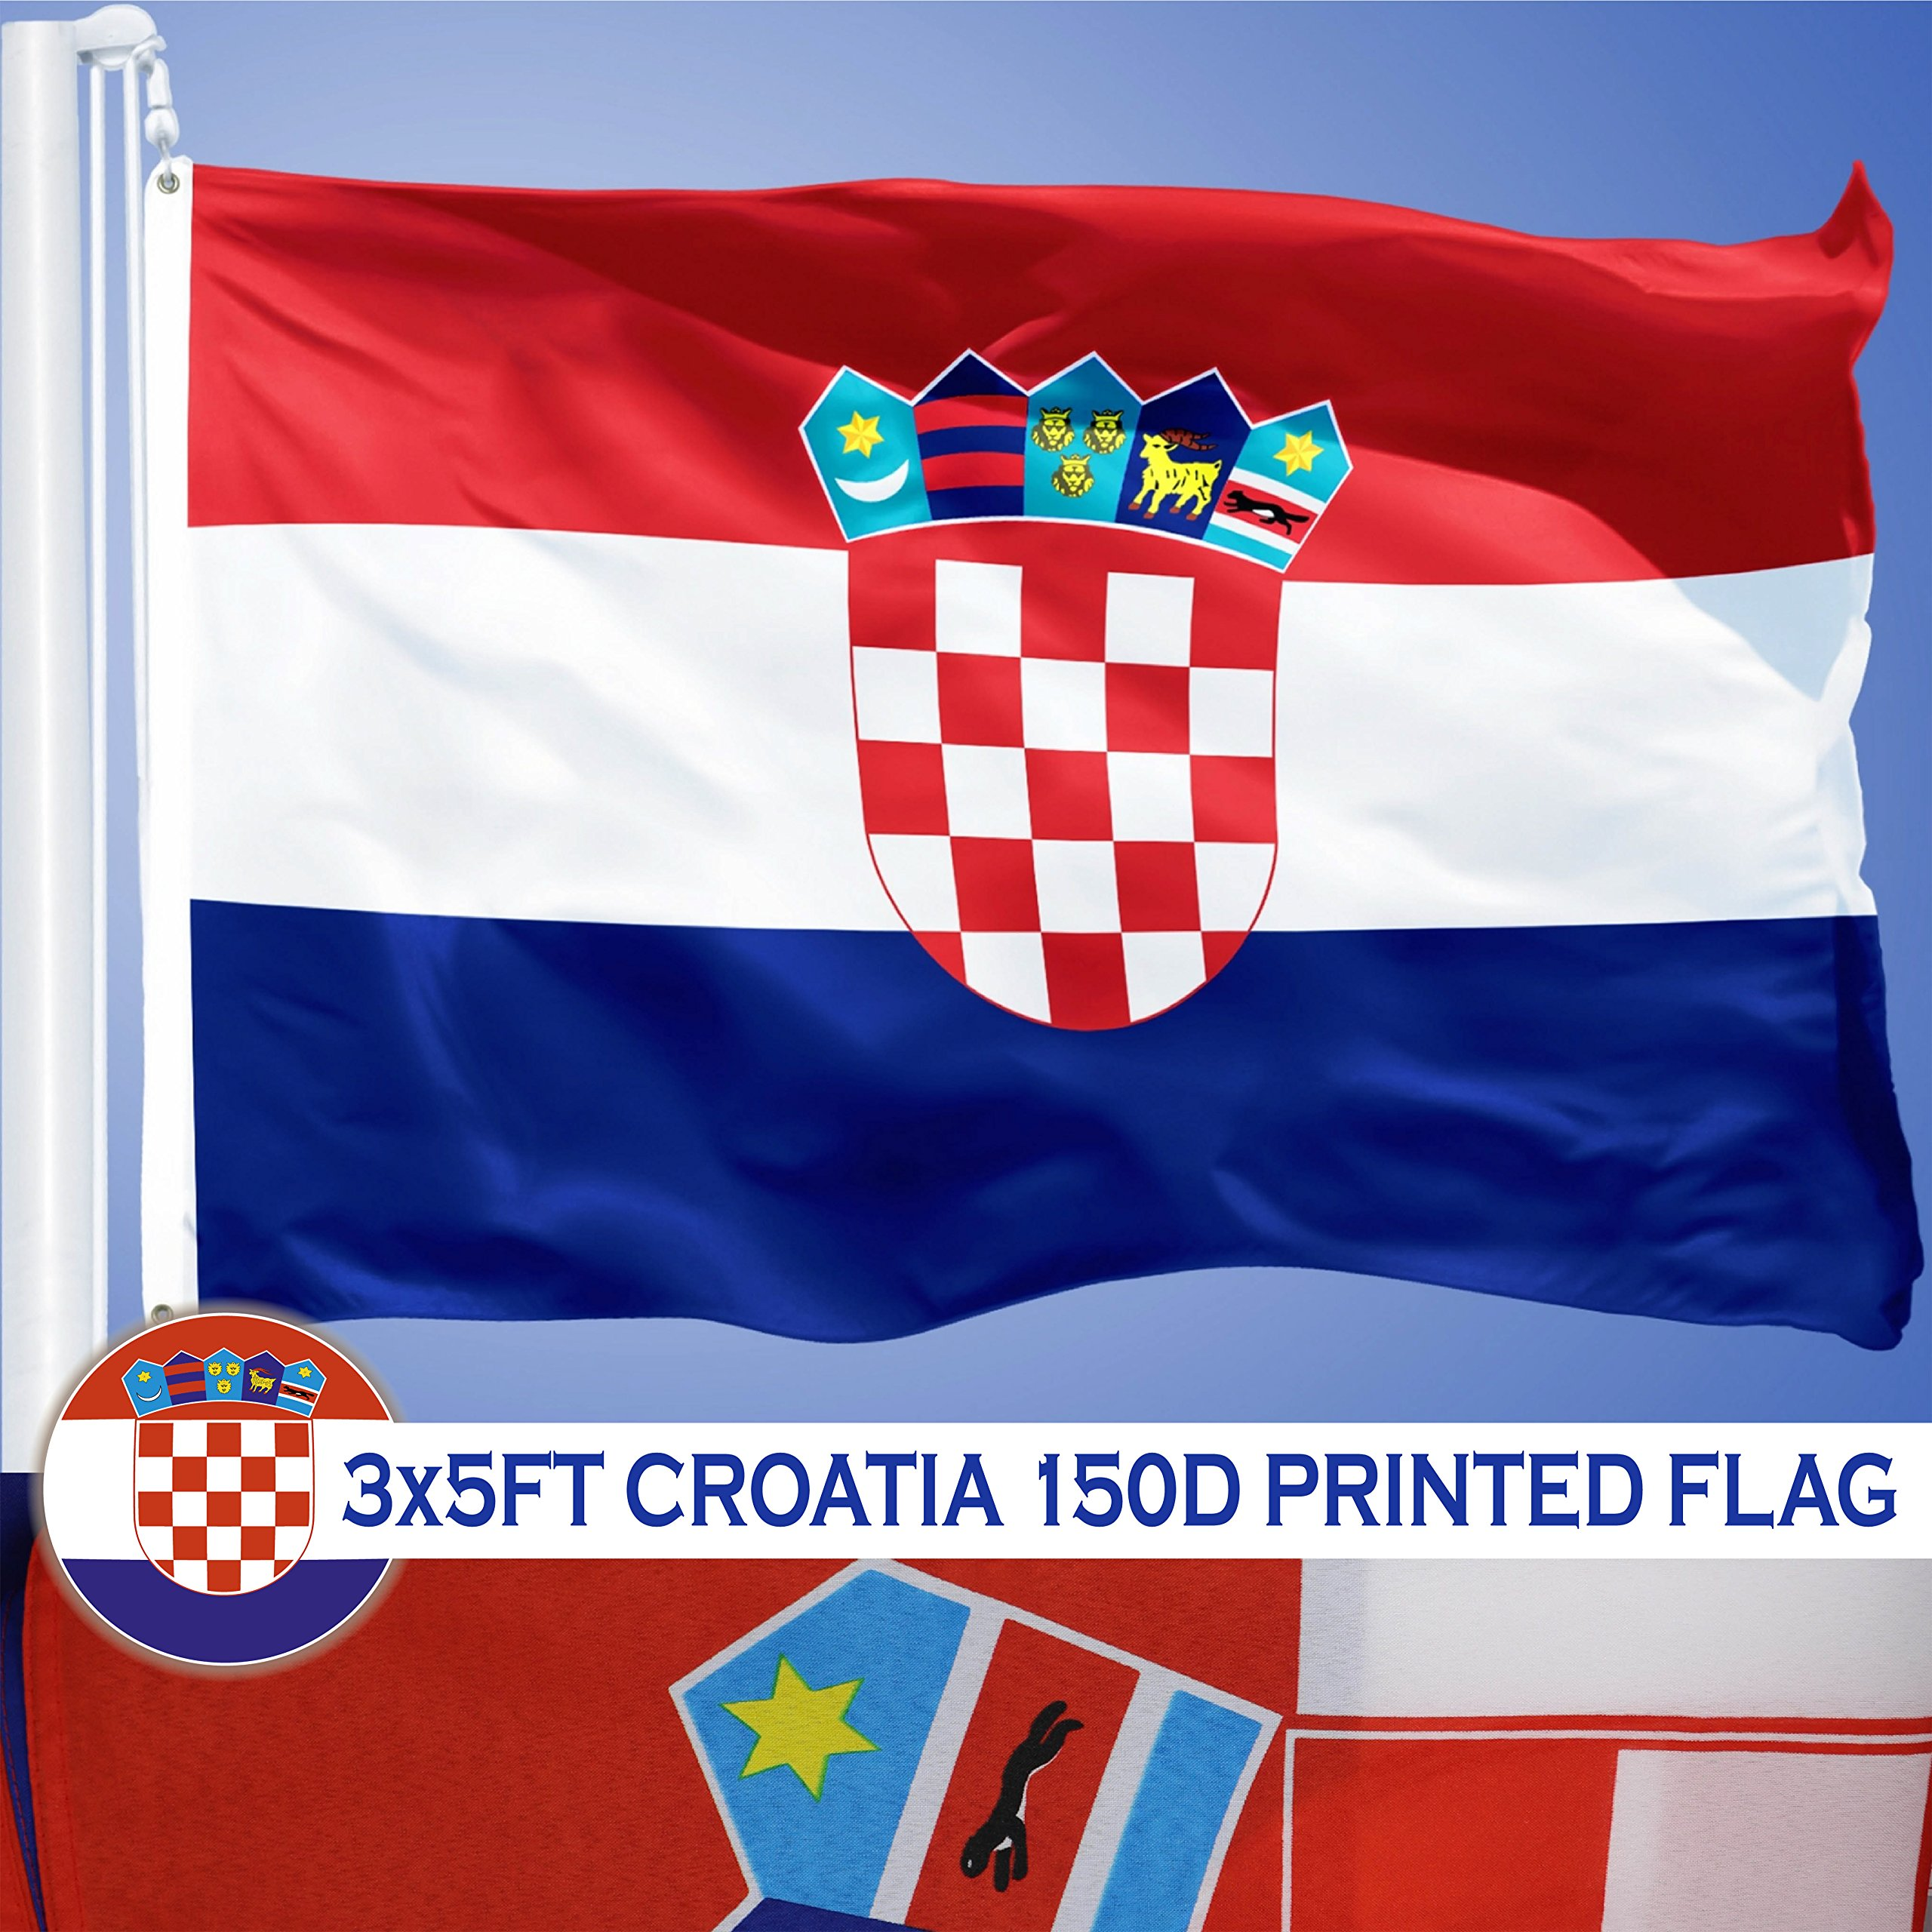 G128 Croatia Croatian Flag 3x5 ft Printed Brass Grommets 150D Quality Polyester Flag Indoor/Outdoor - Much Thicker and More Durable than 100D and 75D Polyester